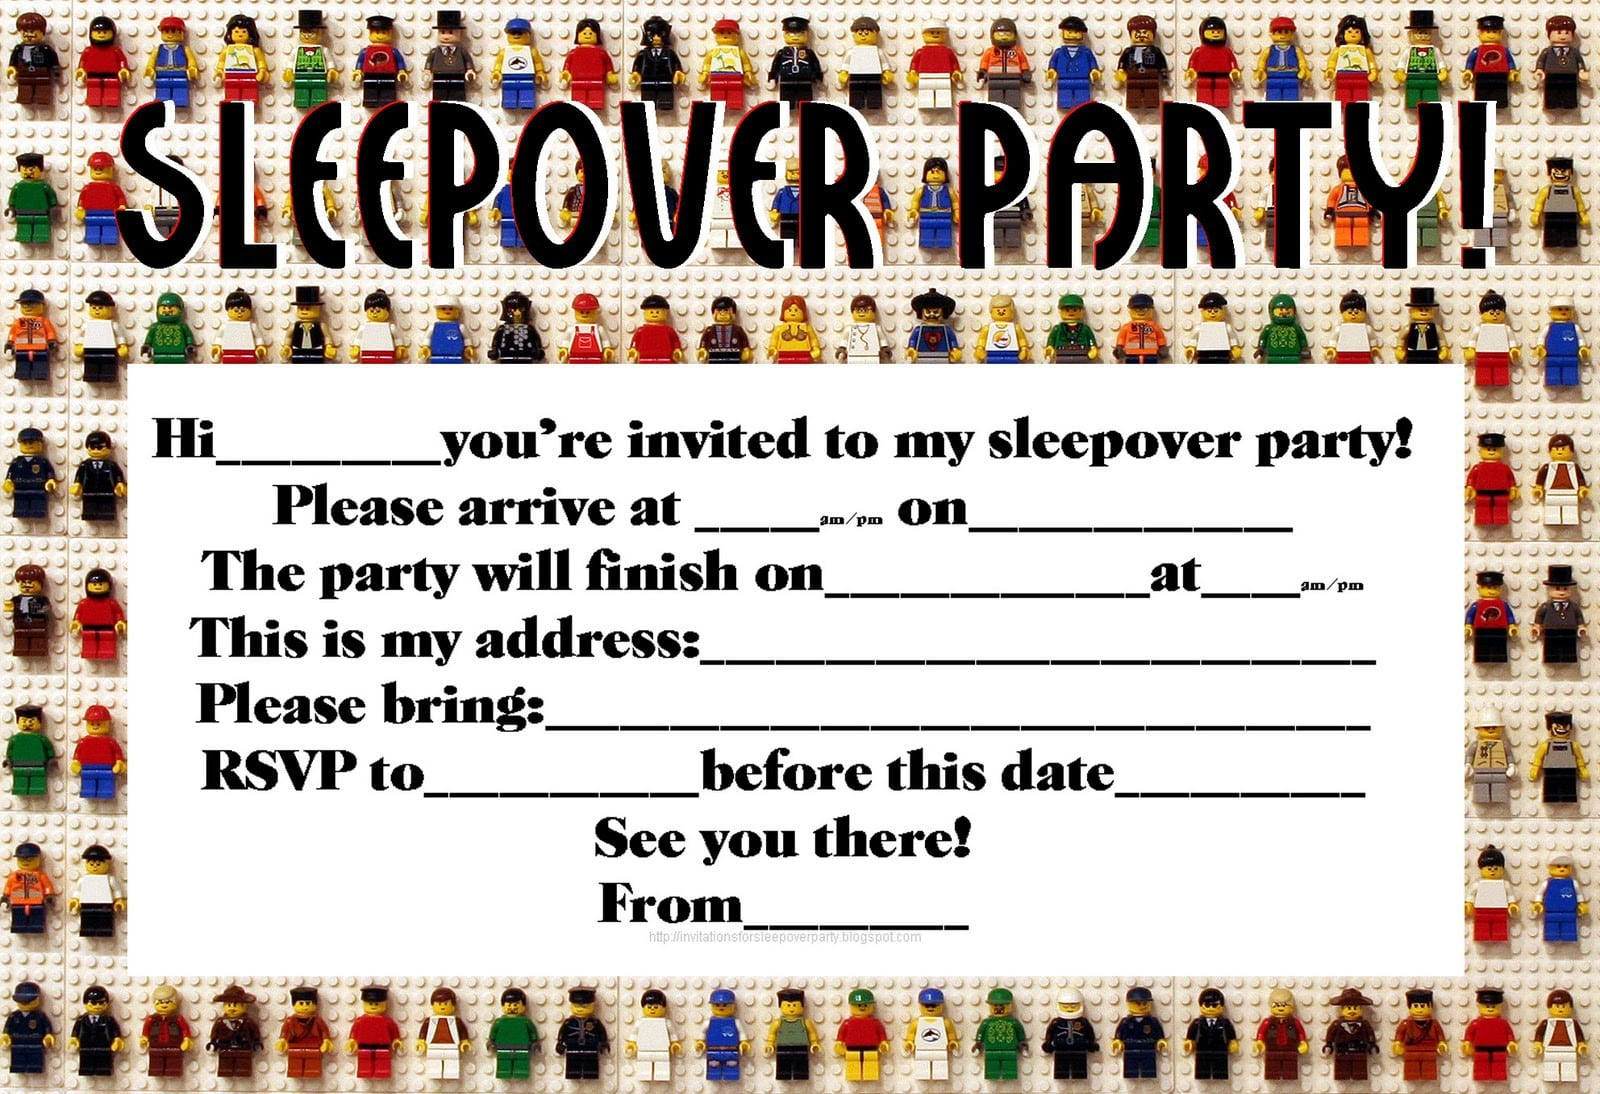 free_slumber_party_invitation_template-5.jpeg